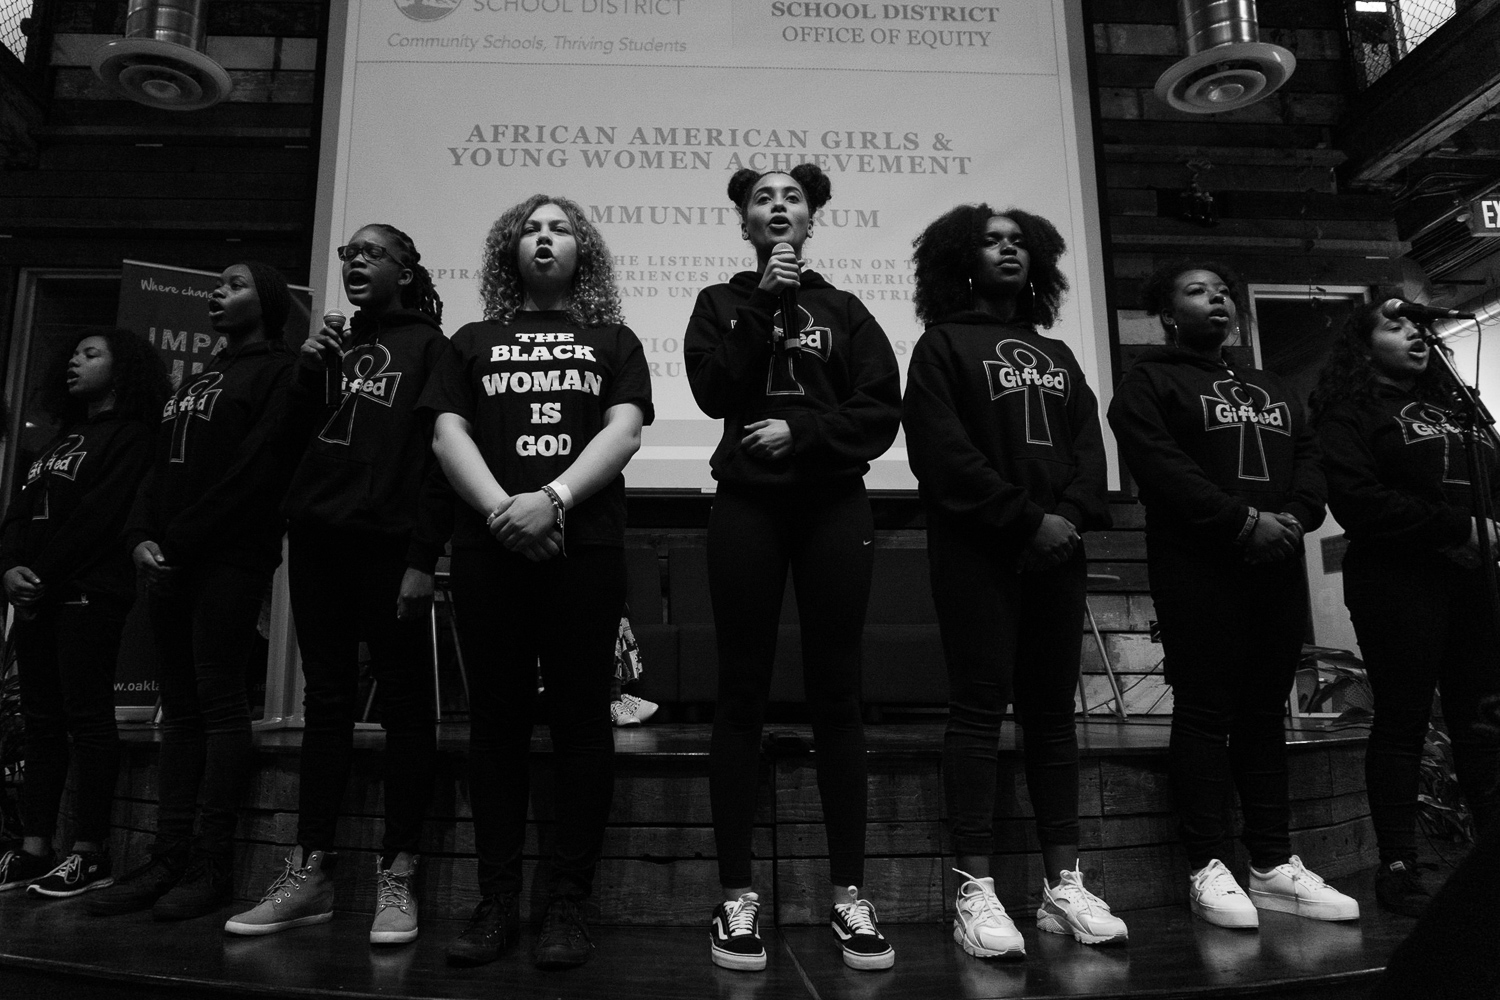 Young Gifted & Black teen poets perform during a program supporting African American Female Excellence in the Oakland Unified School District.